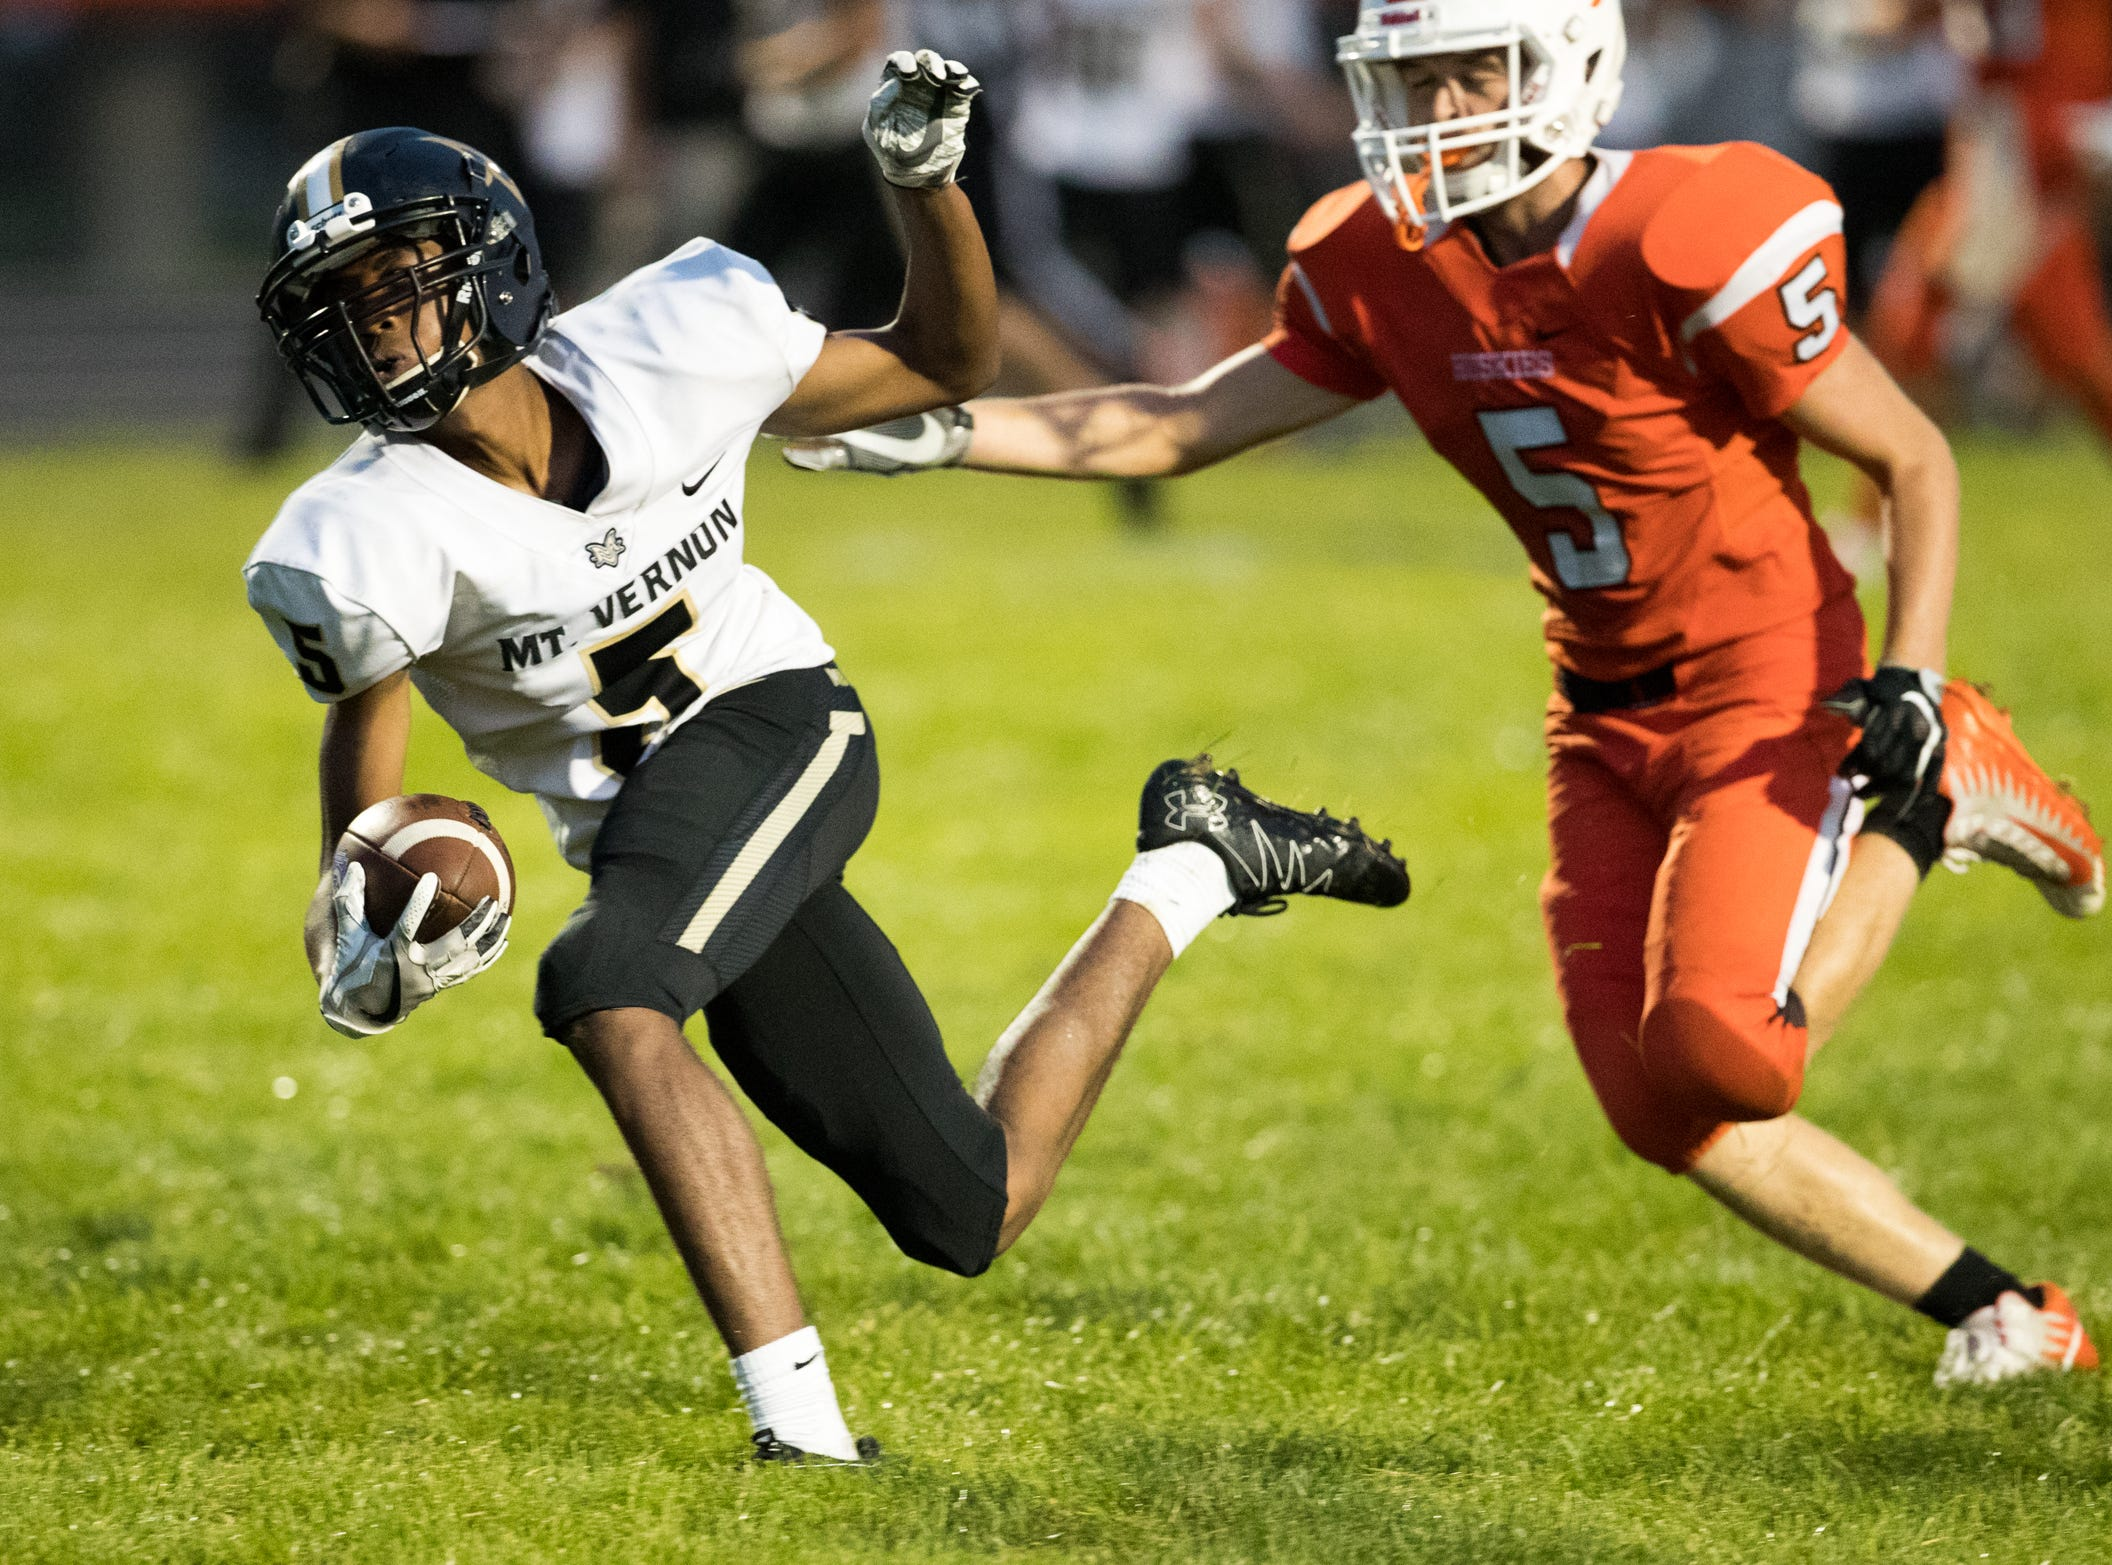 DaRell Jackson of Mount Vernon High School, heads in for a touchdown as he slips defense by Eric Alden of Hamilton Heights High School football, won by MVHS, 43-14, Arcadia, Friday, Aug. 17, 2018. This game is the first for HHHS head coach Jon Kirschner, who faced his father Mike Kirschner, a veteran and champion coach in his first season at MVHS.